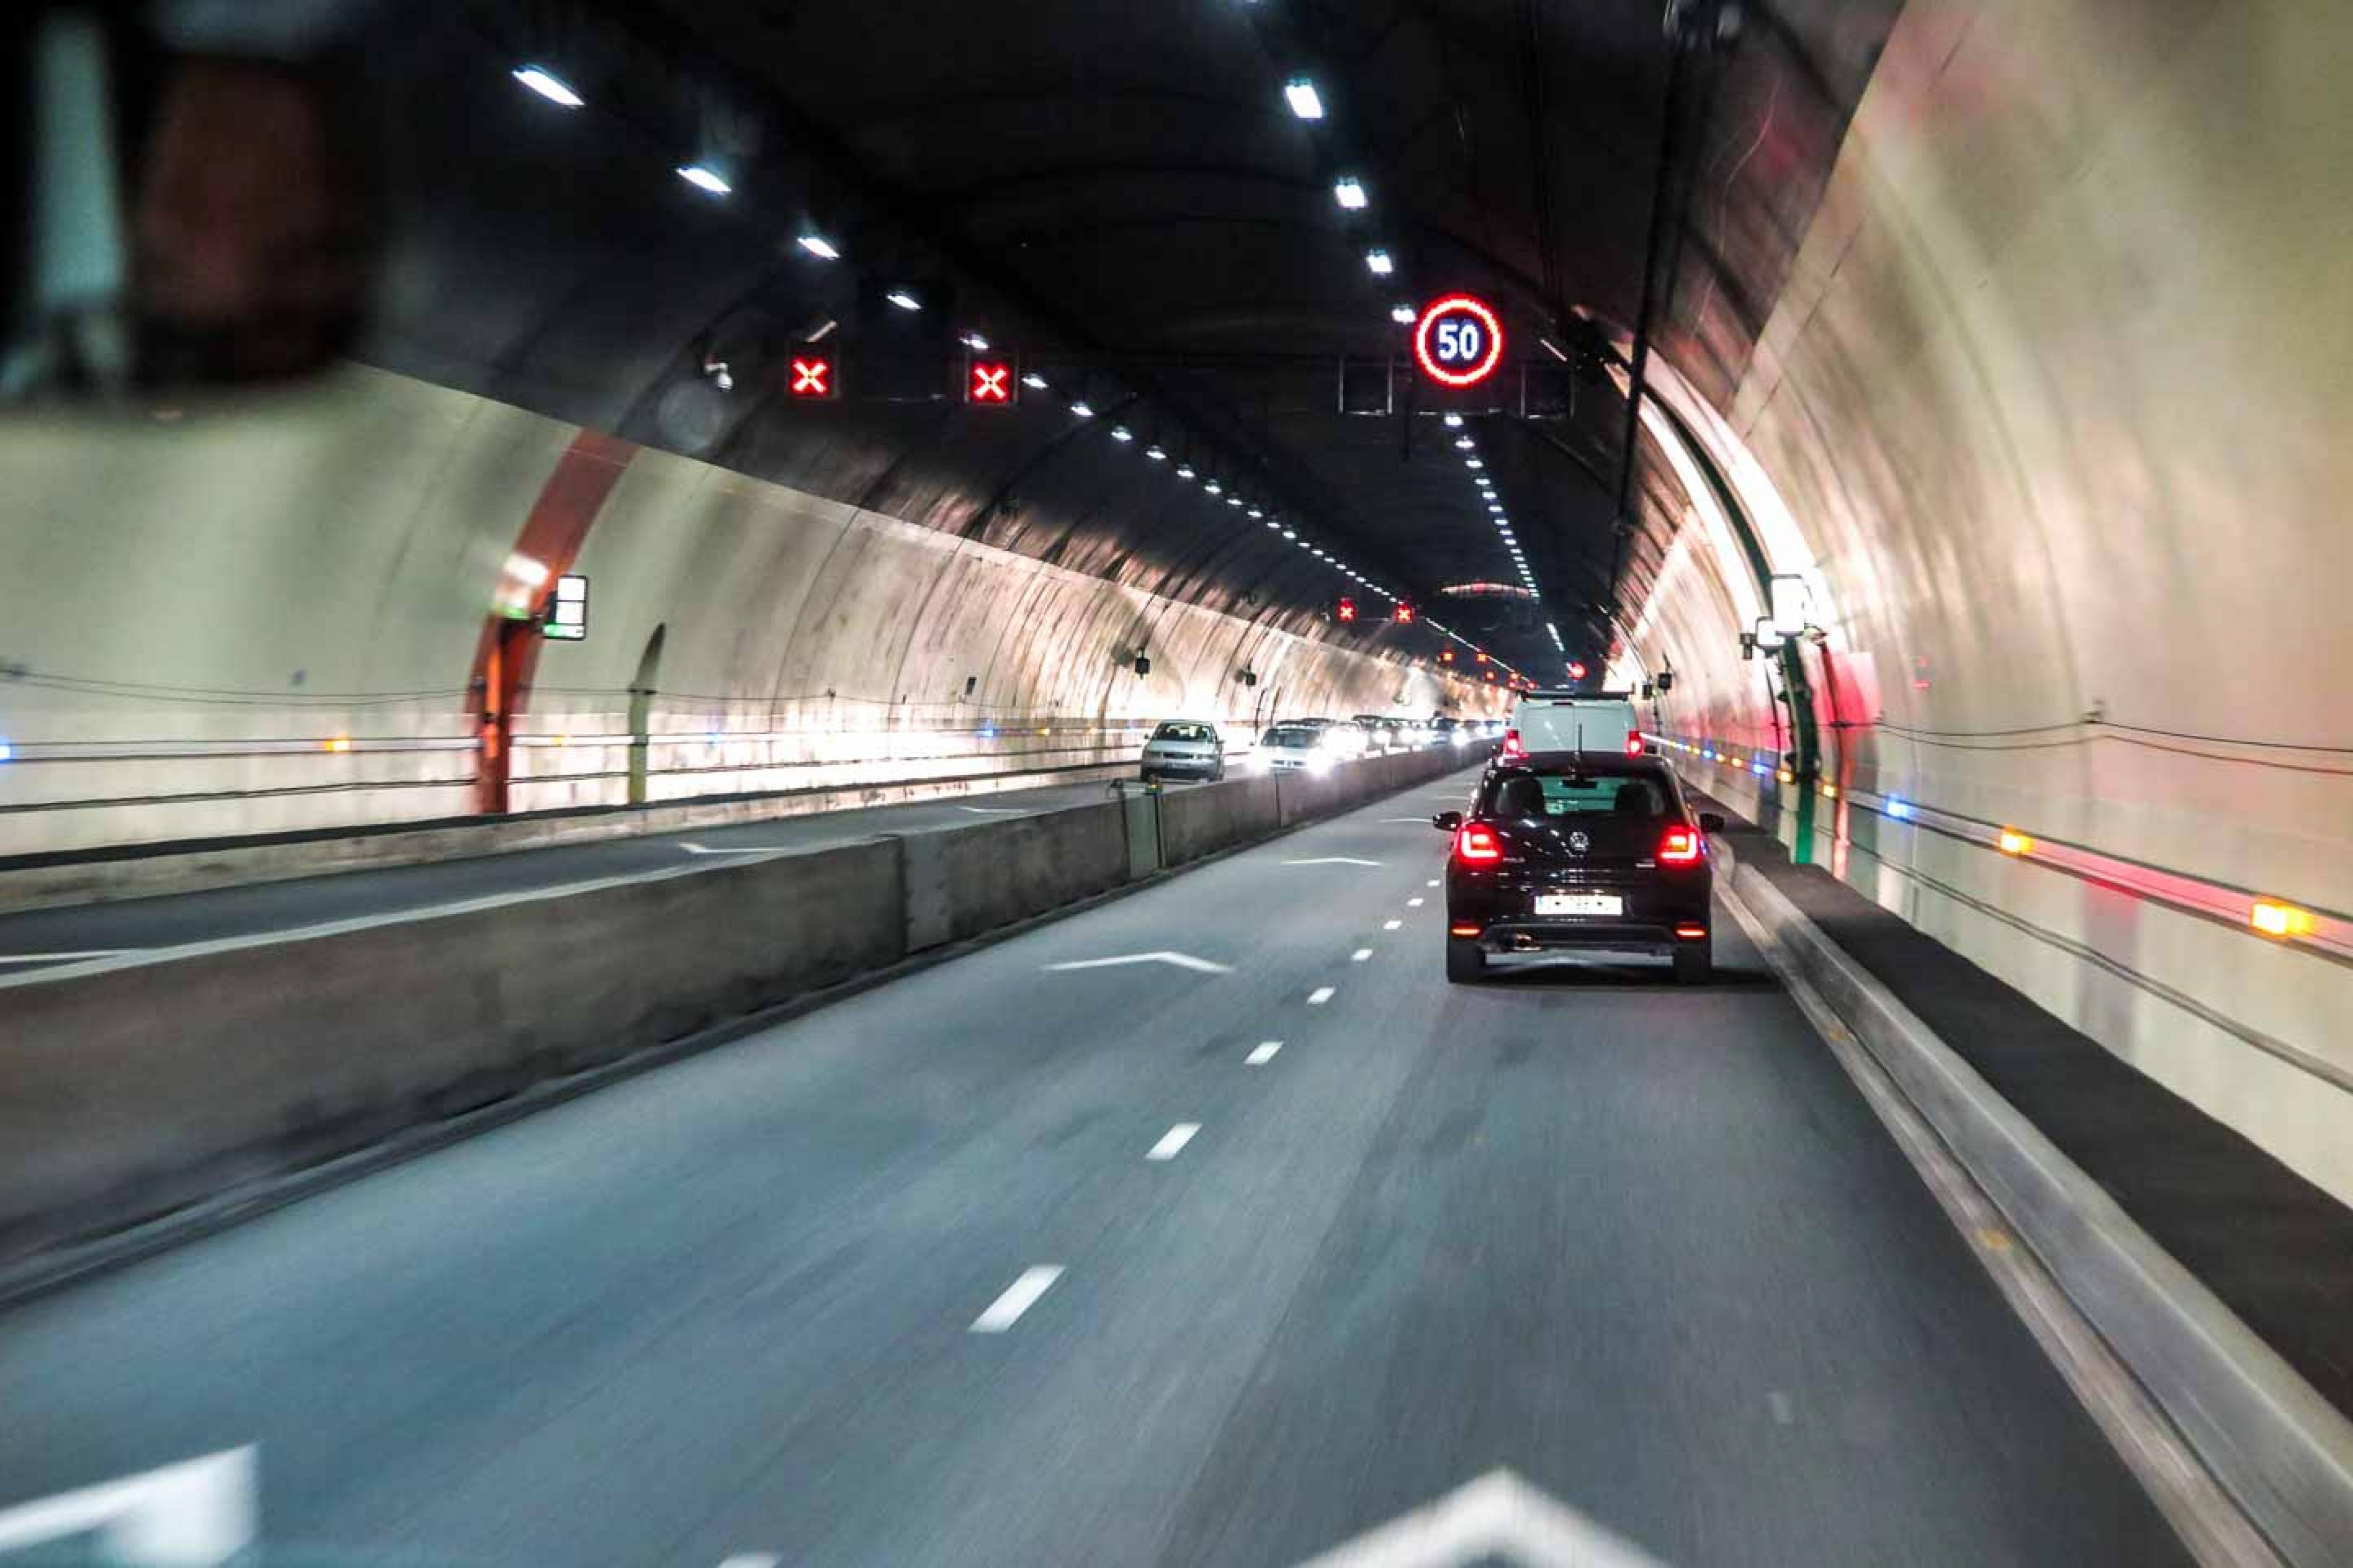 Cars drive through city road tunnel